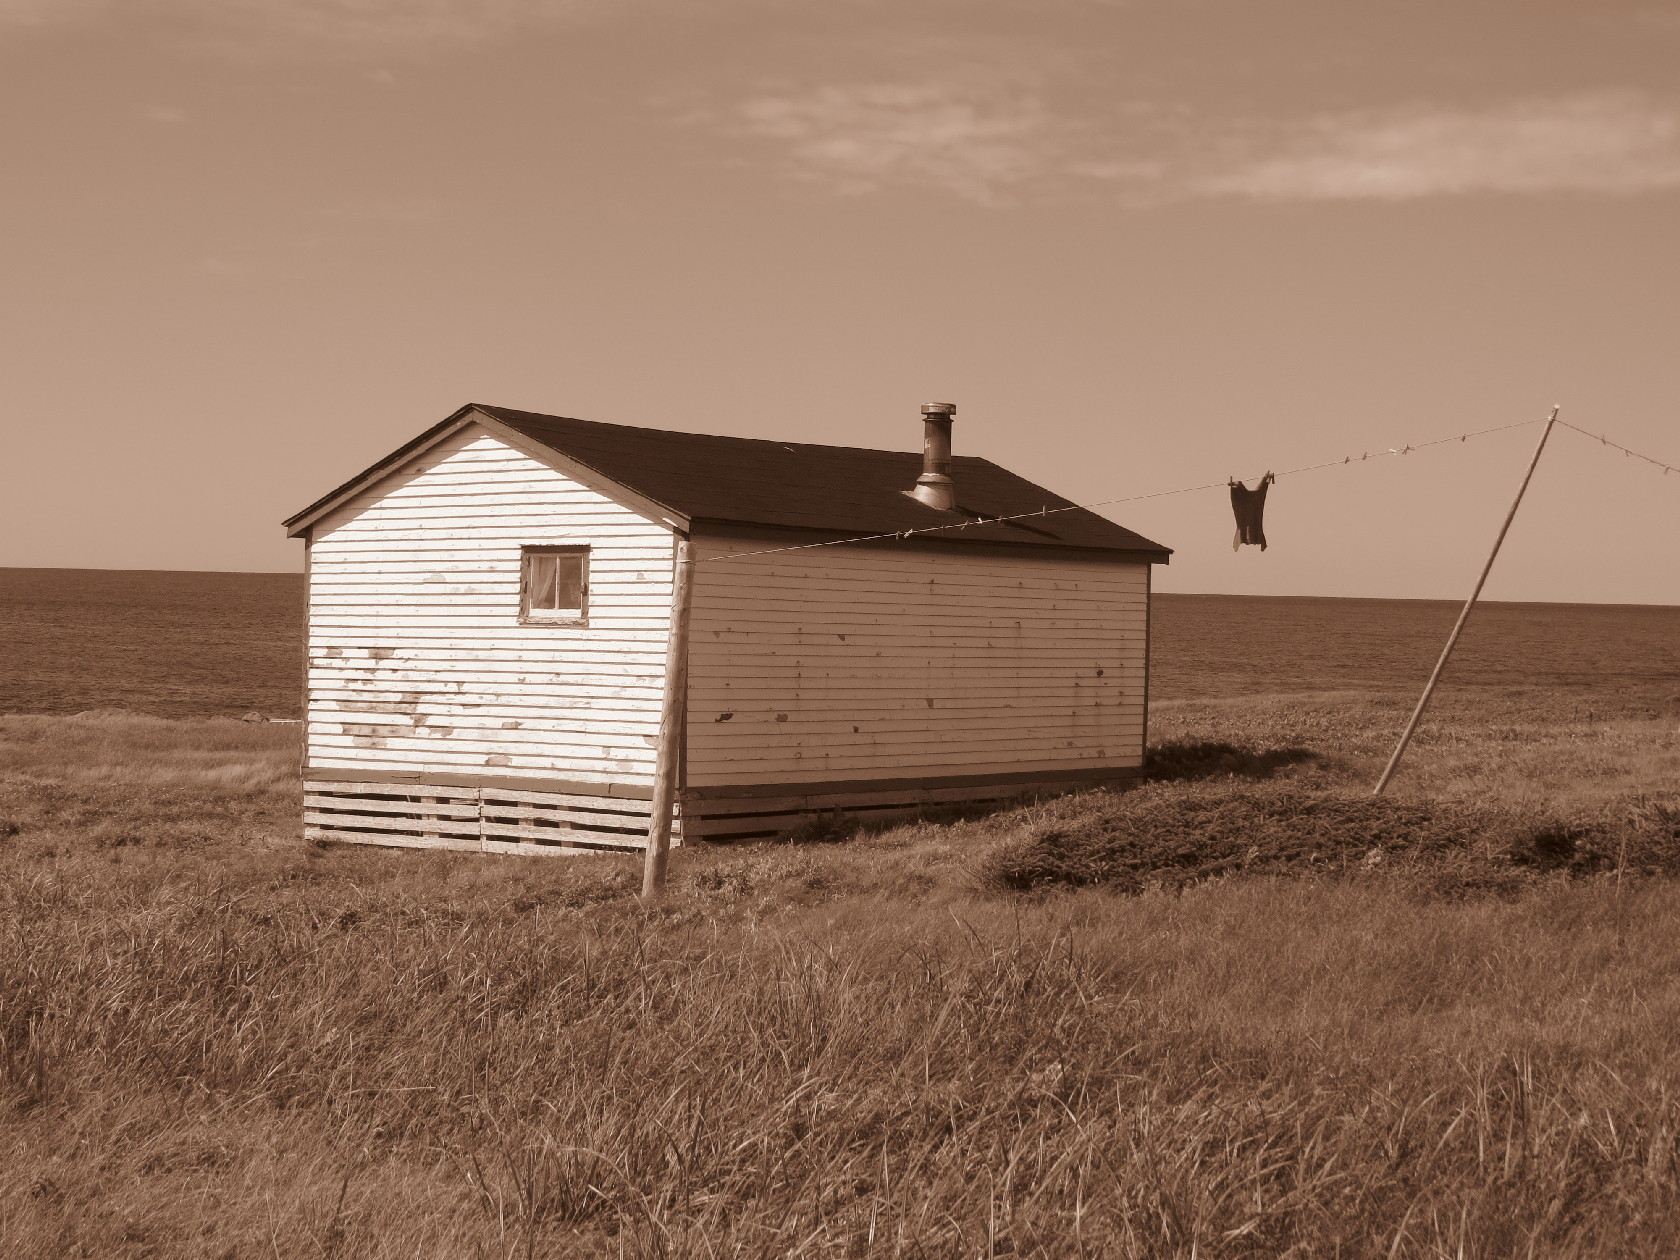 Forlorn house in Broom's Point, sepia with shirt on line, Gros Morne coast